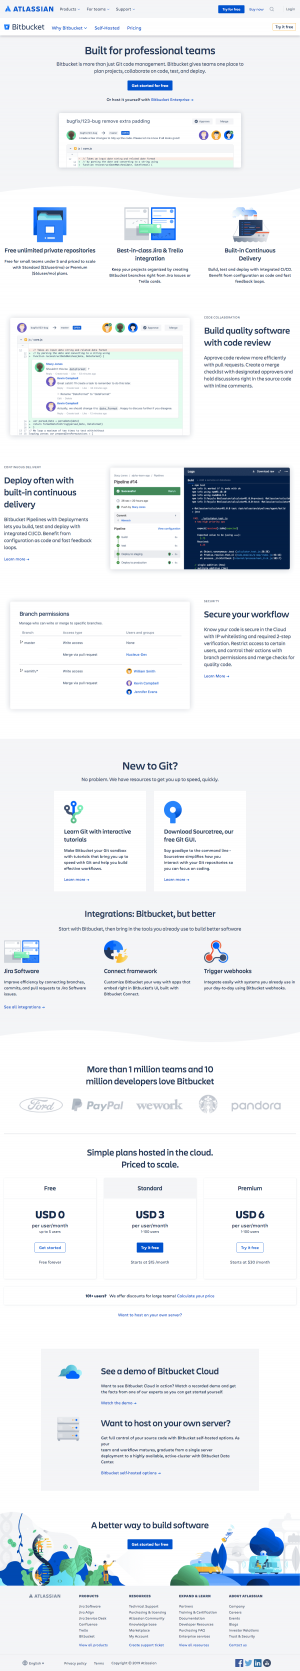 Atlassian - Features page 1